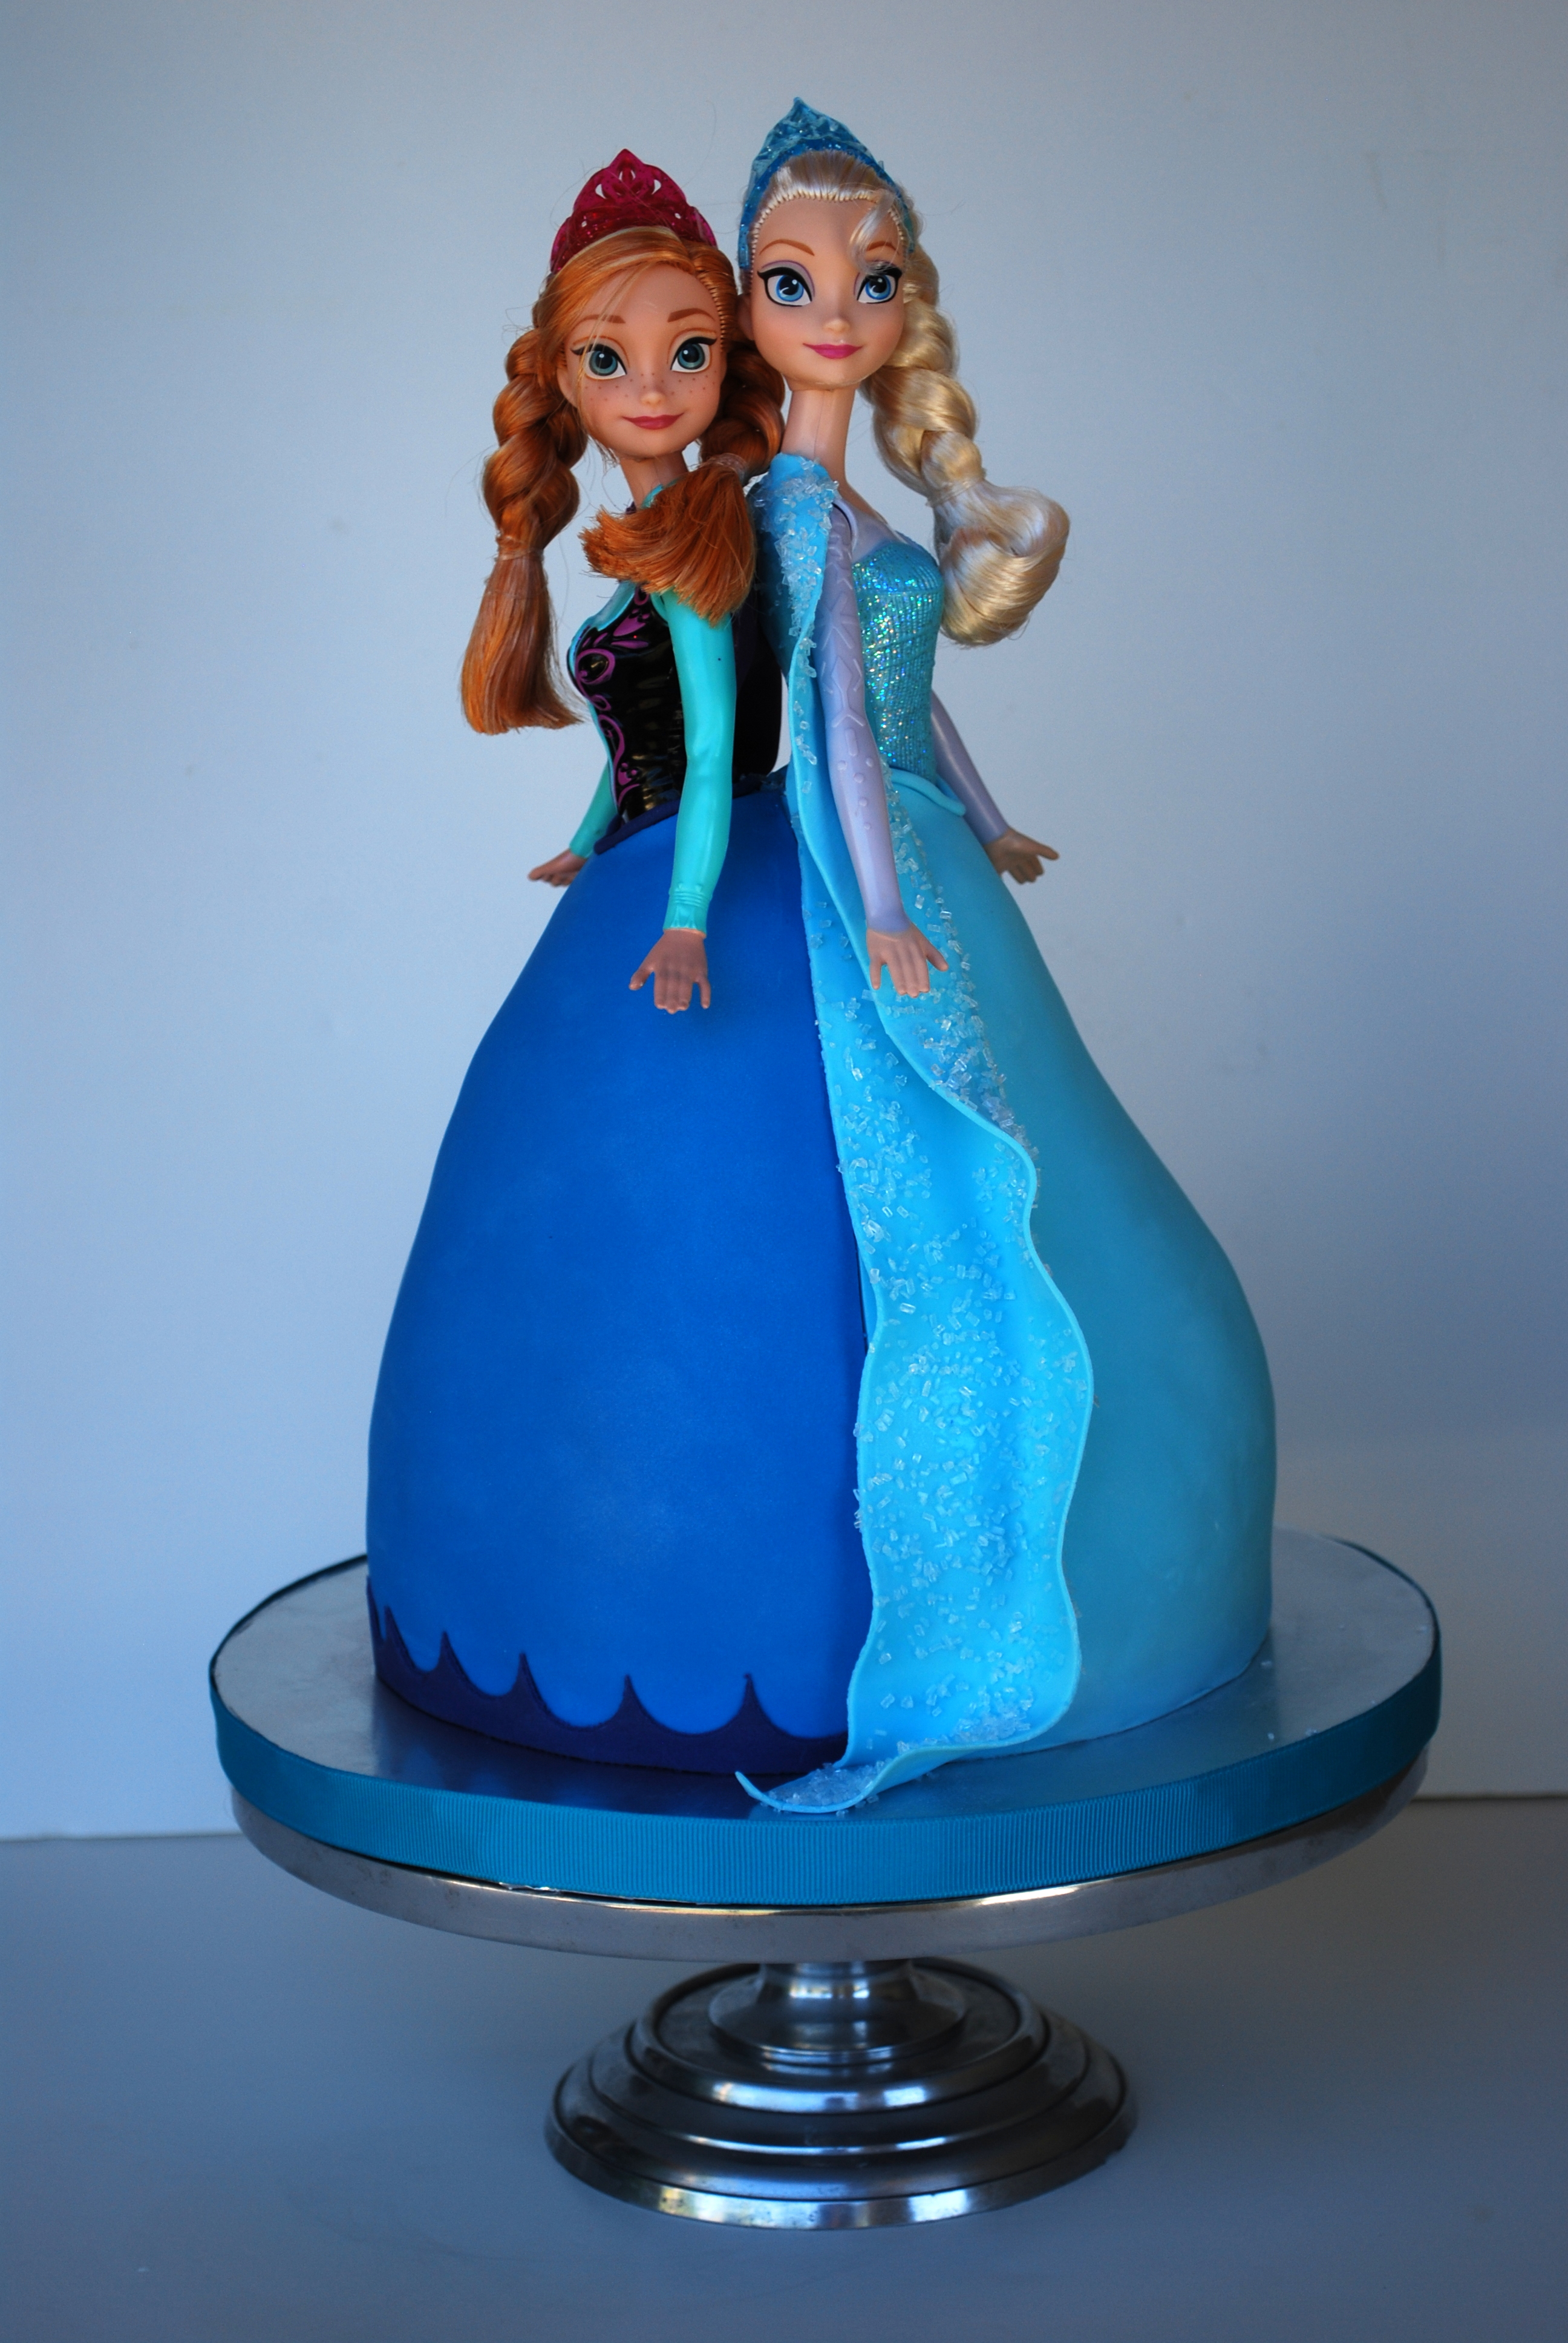 1000+ images about Frozen Birthday Cakes on Pinterest ...